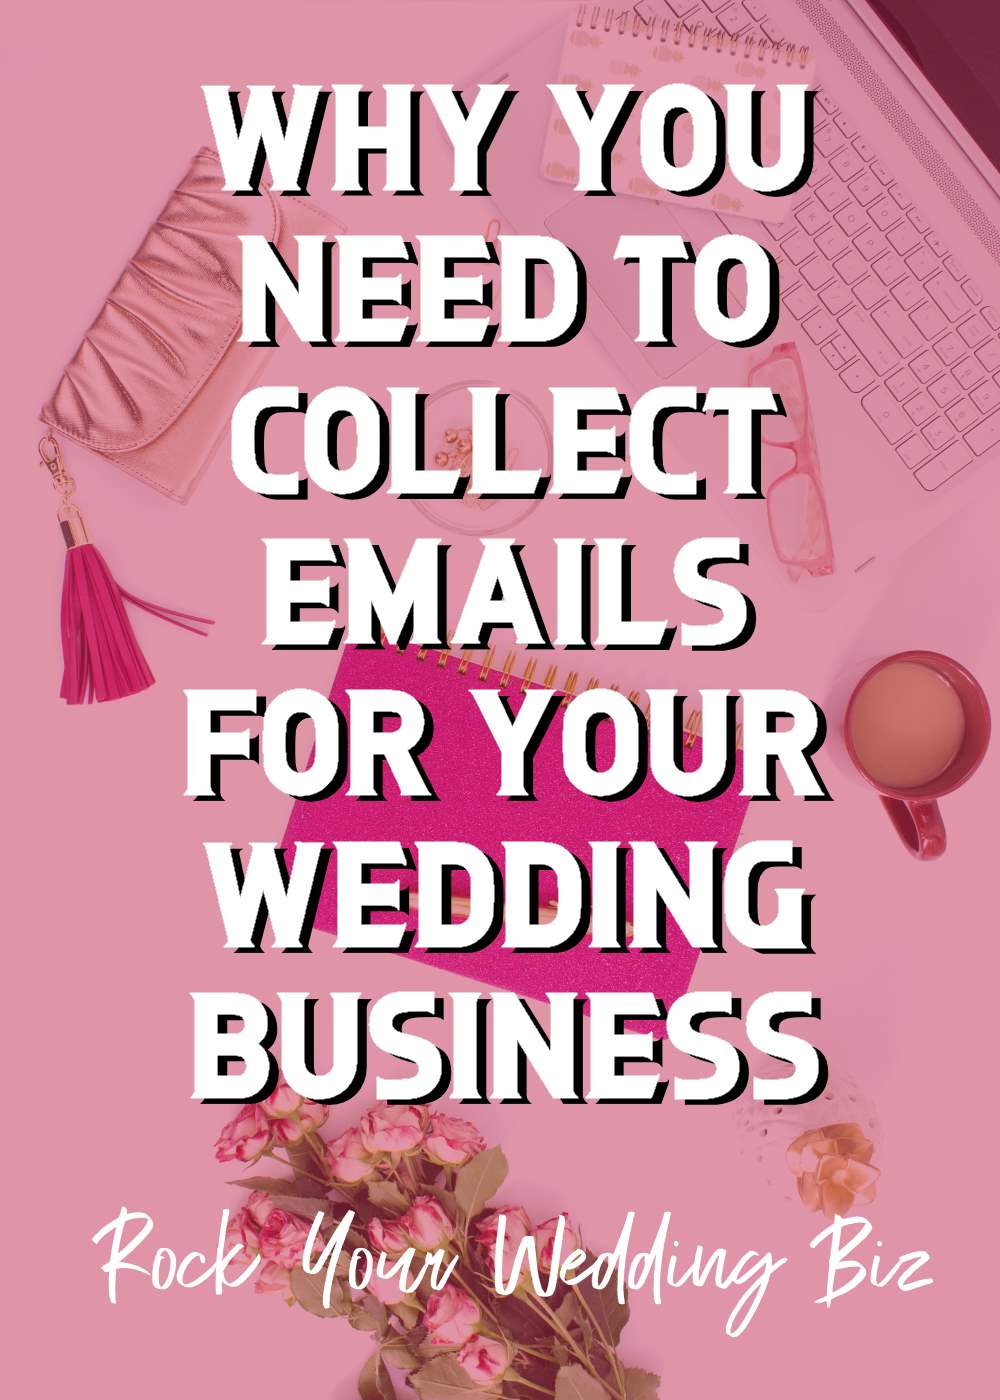 Episode 26 - Why You Need to Collect Emails for Your Business